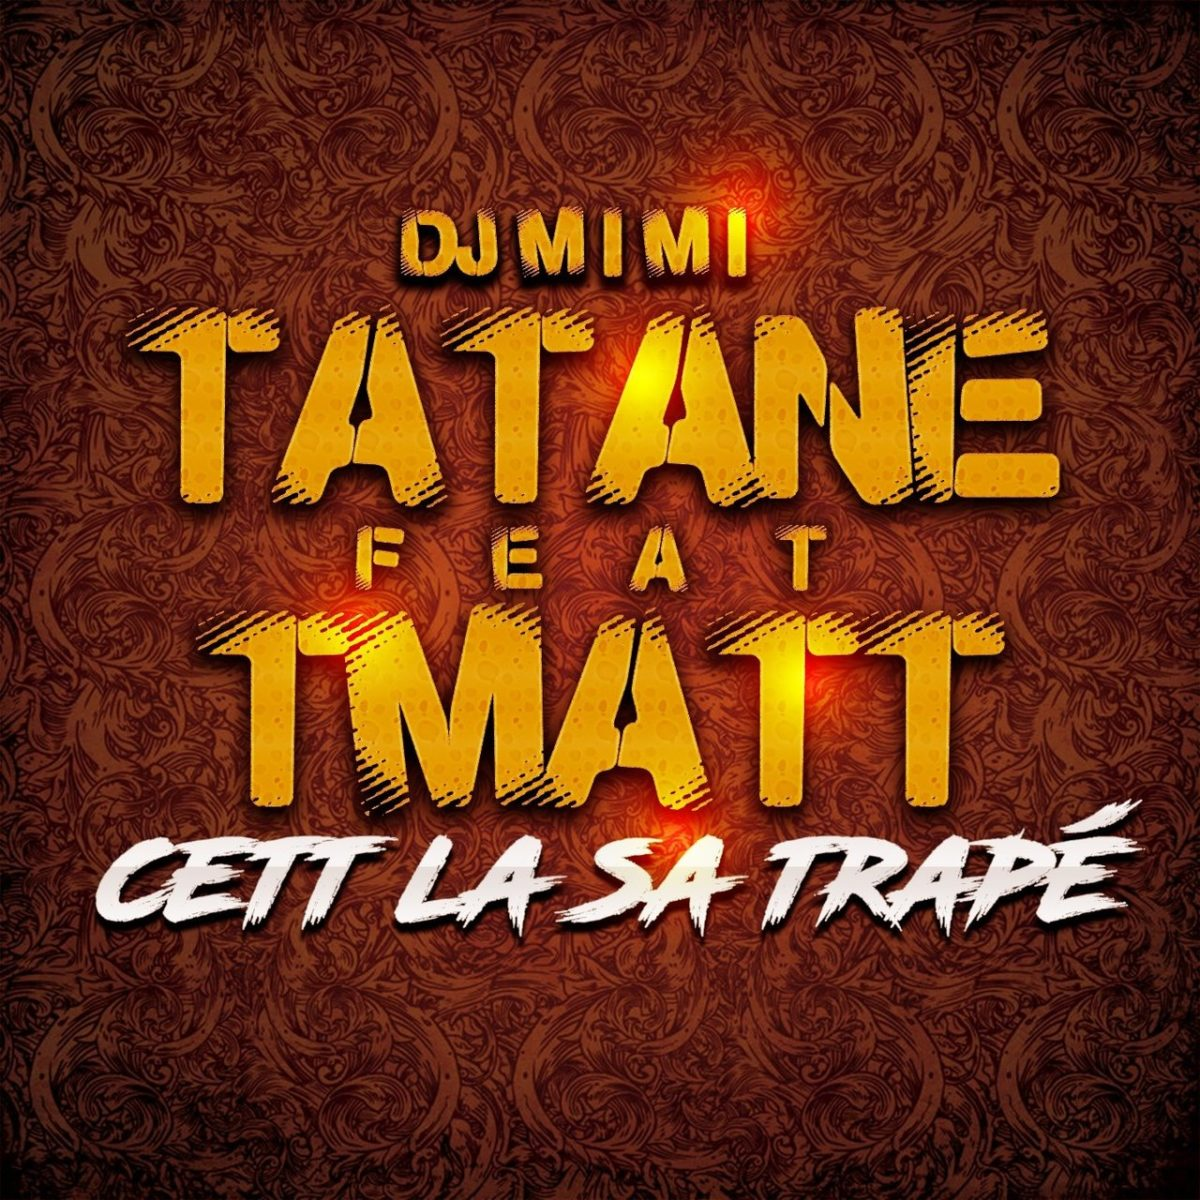 DJ Mimi - Cett La Sa Trapé (ft. Tatane and T Matt) (Cover)